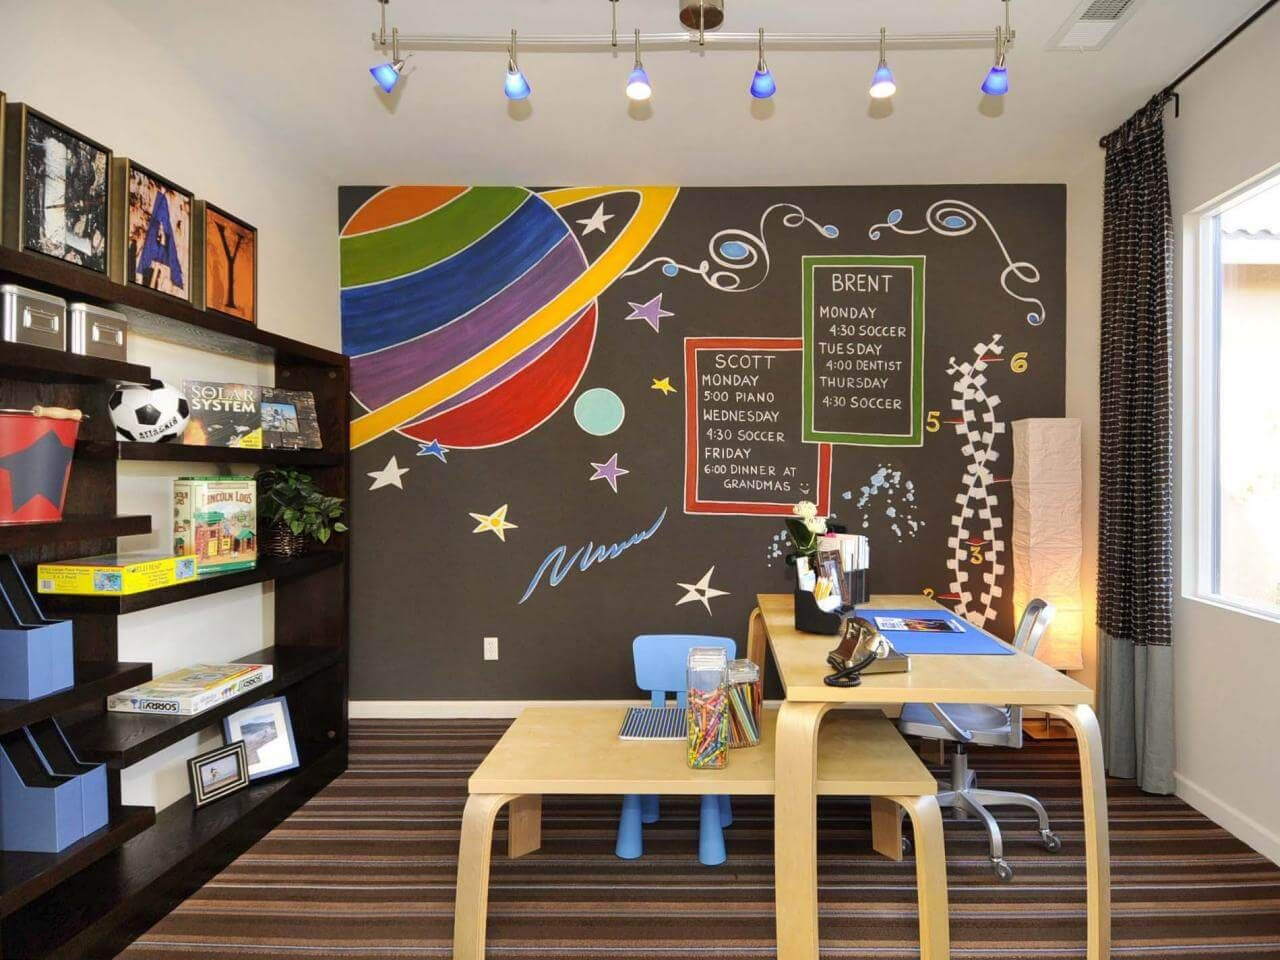 stydy-space-for-kids 10 Tips to Design the Study Space Perfectly